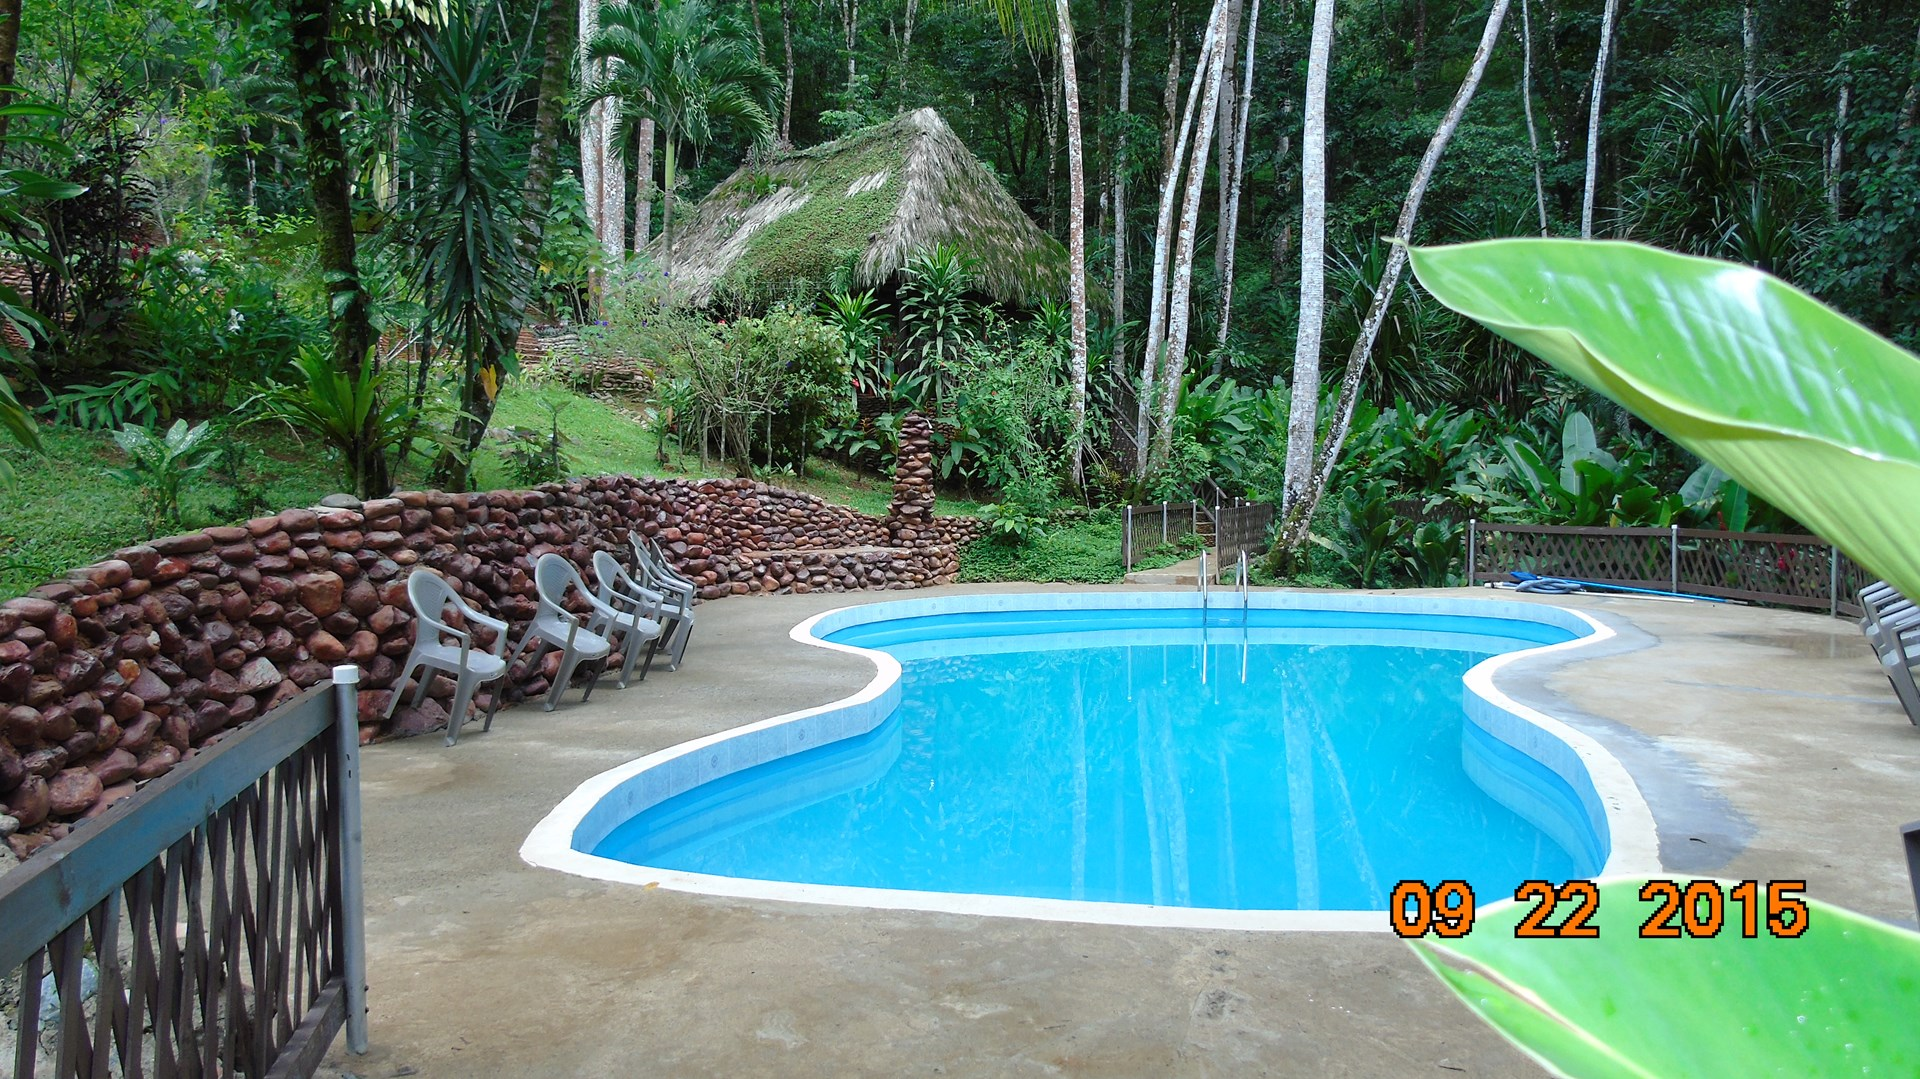 Rio Santiago Nature Resort - Honduras' Newest Nature Resort